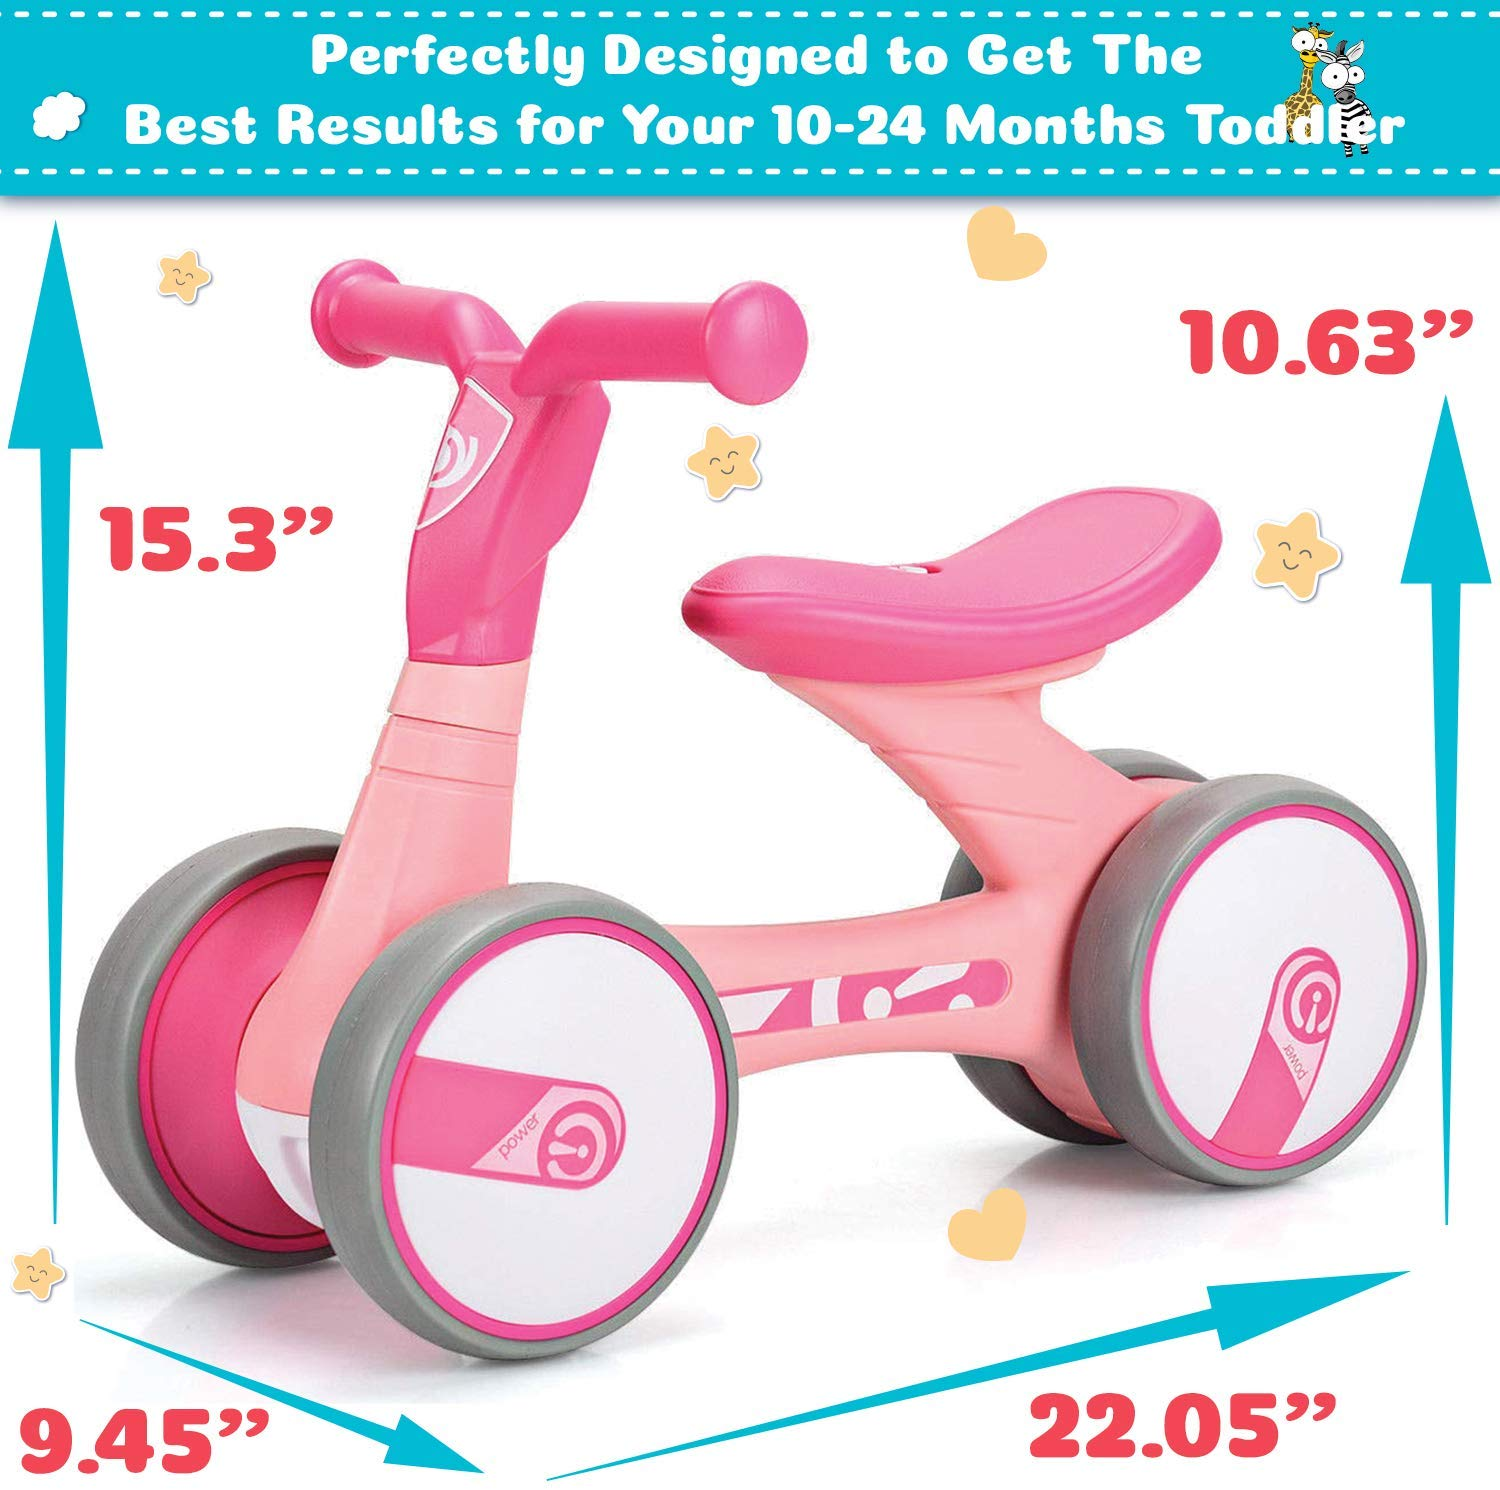 Avenor Baby Balance Bicycle Ages 1-2 Years Old